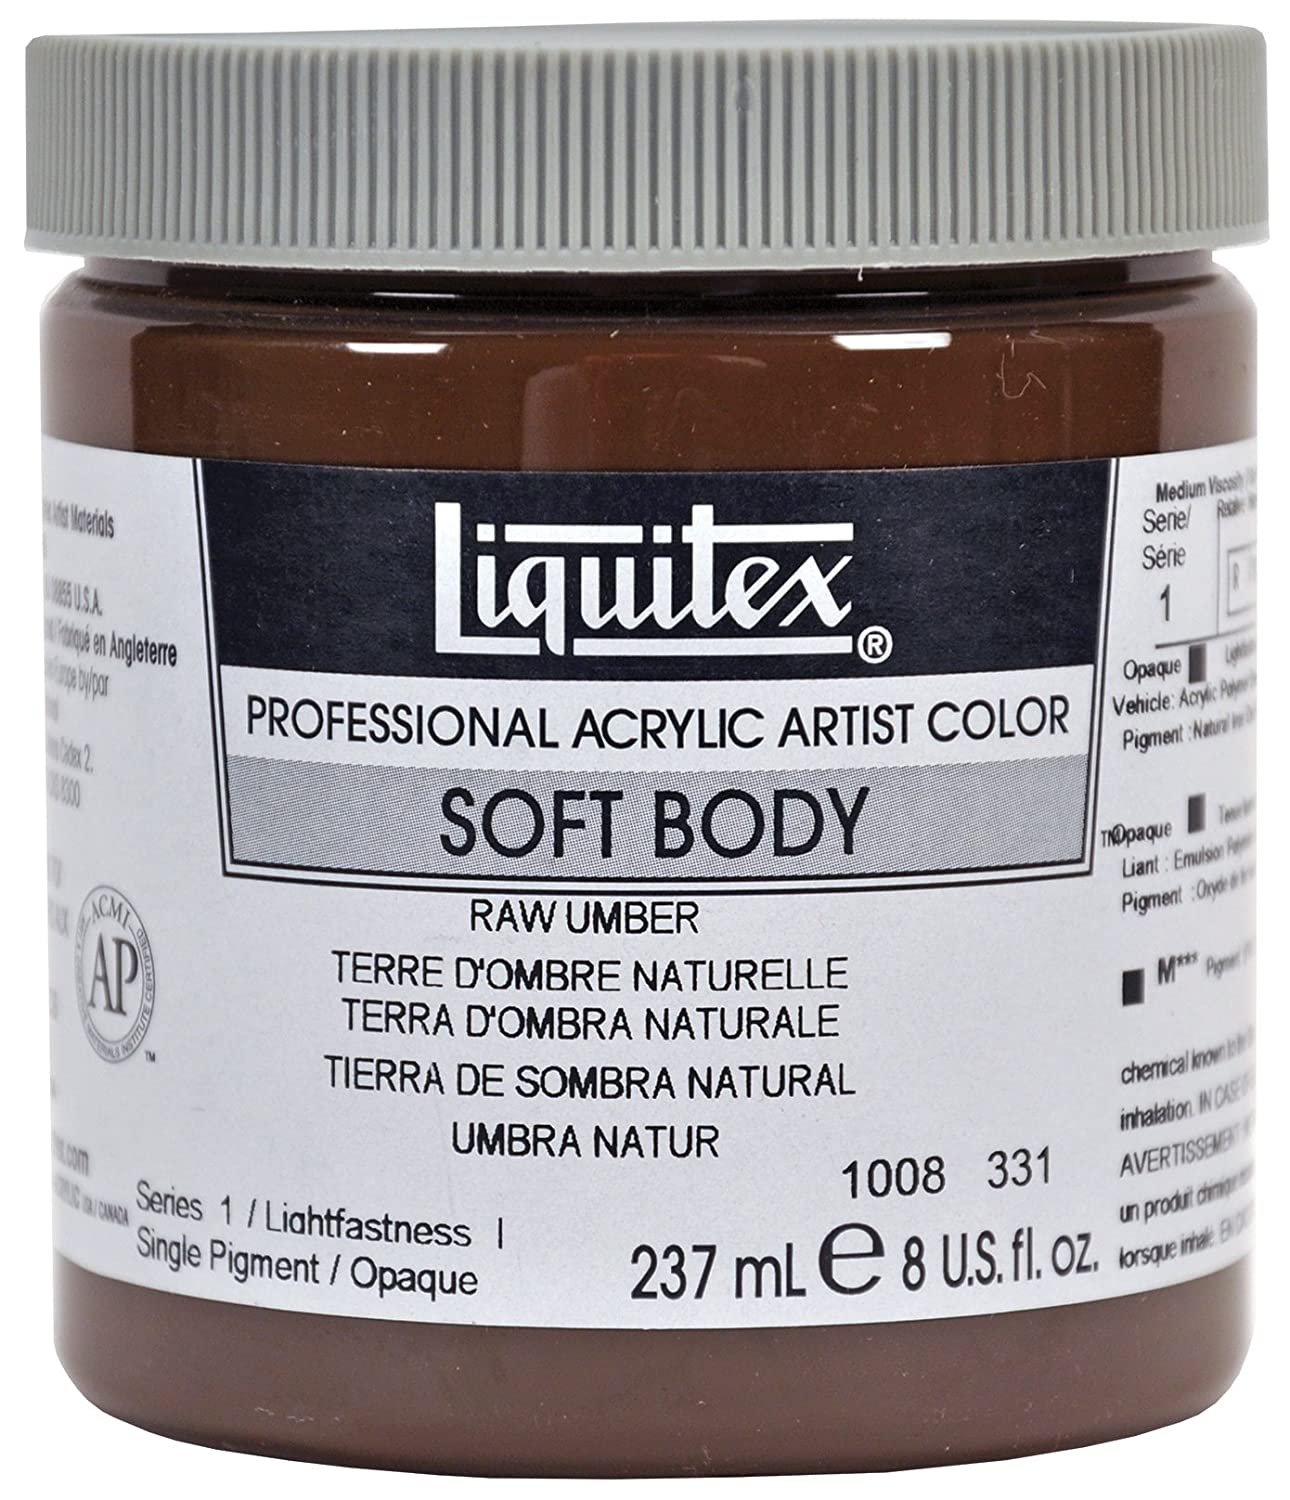 Liquitex Professional Soft Body Acrylic Paint - 237 ml, Cobalt Blue 1008170